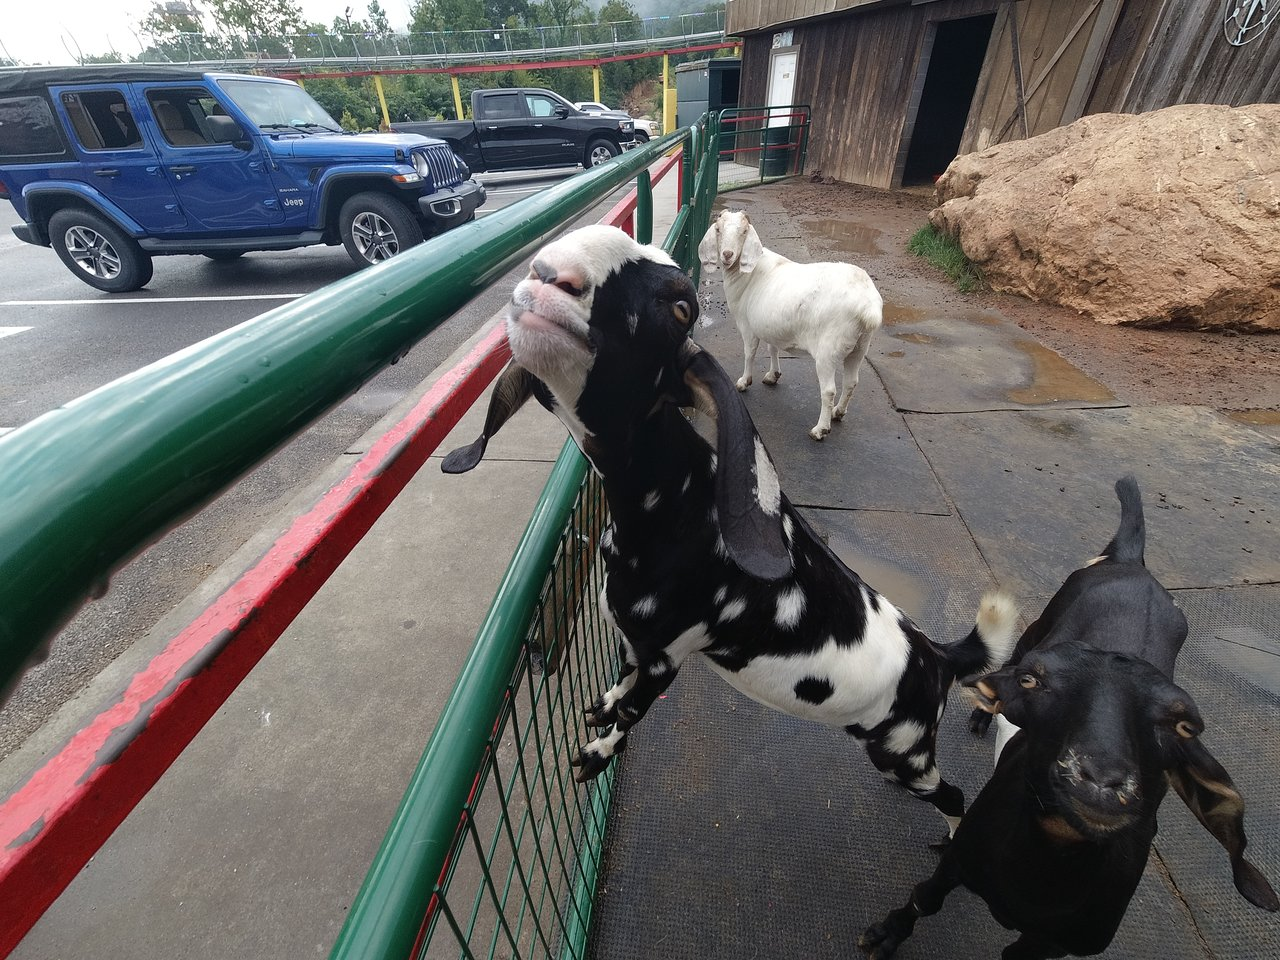 Goats On The Roof Pigeon Forge 2020 All You Need To Know Before You Go With Photos Tripadvisor